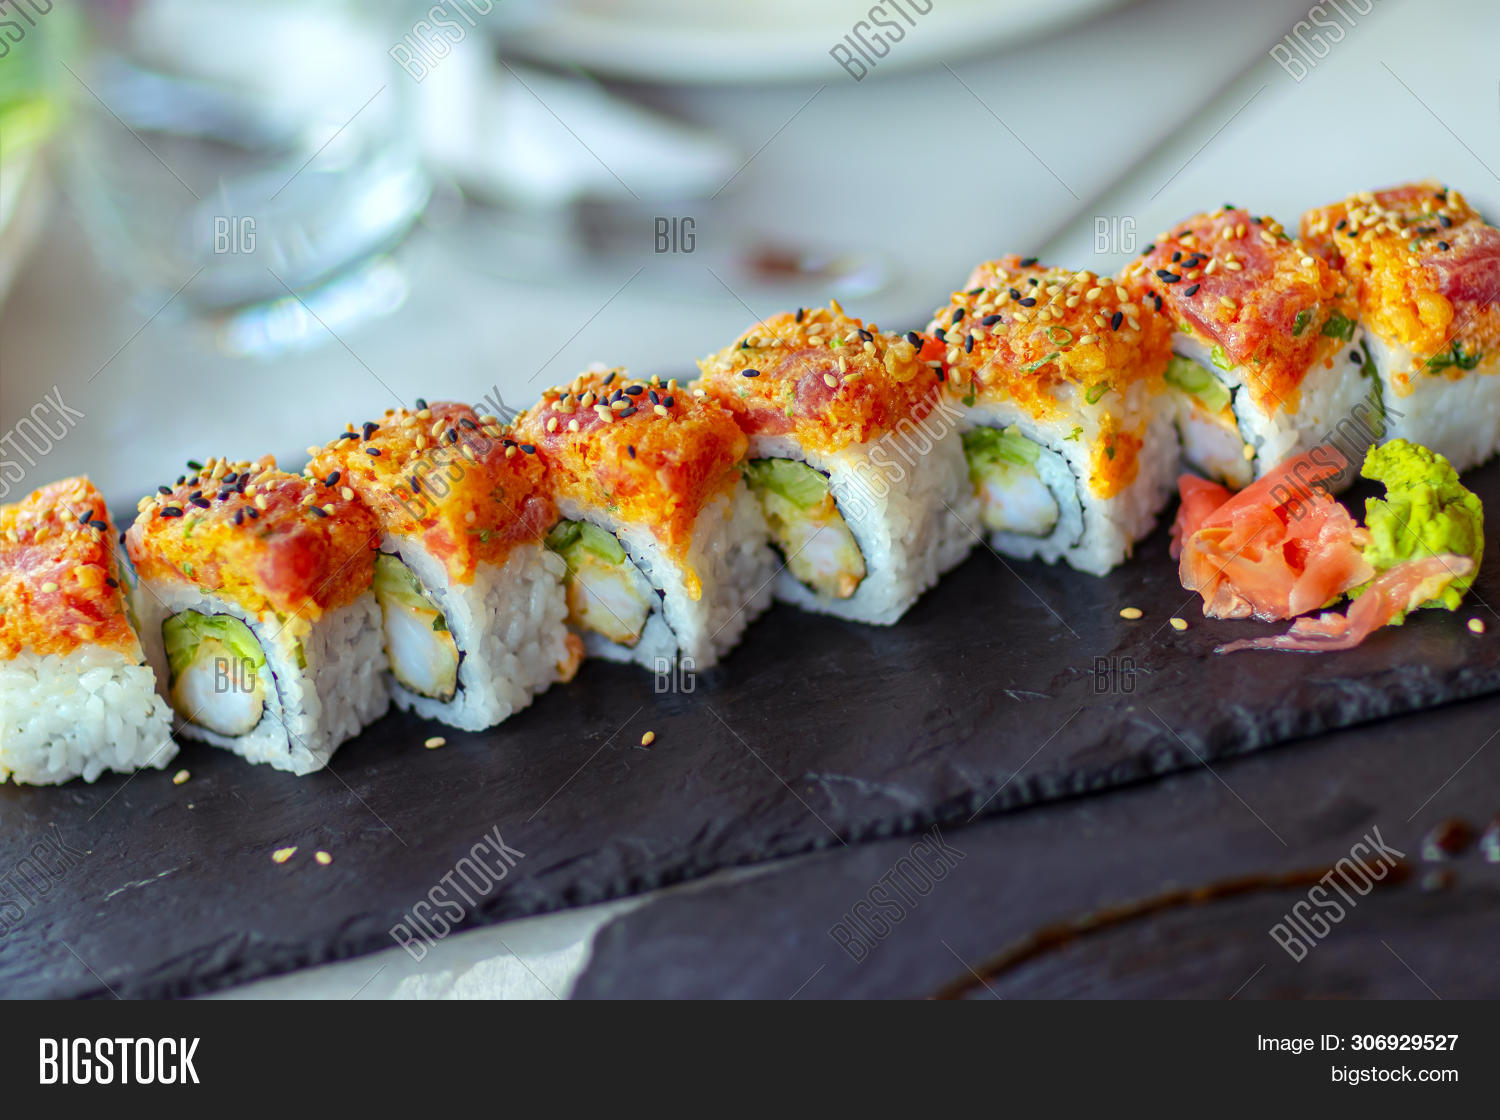 asia,asian,avocado,beautiful,cafe,california rolls,chopsticks,closeup,cuisine,culture,delicacy,delicious,diet,dinner,dish,eat,fish,food,fresh,ginger,gourmet,healthy,japanese,lunch,meal,menu,no people,oriental,raw,restaurant,rice,roll,salmon,sauce,seafood,seaweed,serving,soy,soya sauce,sushi bar,sushi menu,sushi plate,sushi restaurant,table,tasty,traditional,wasabi